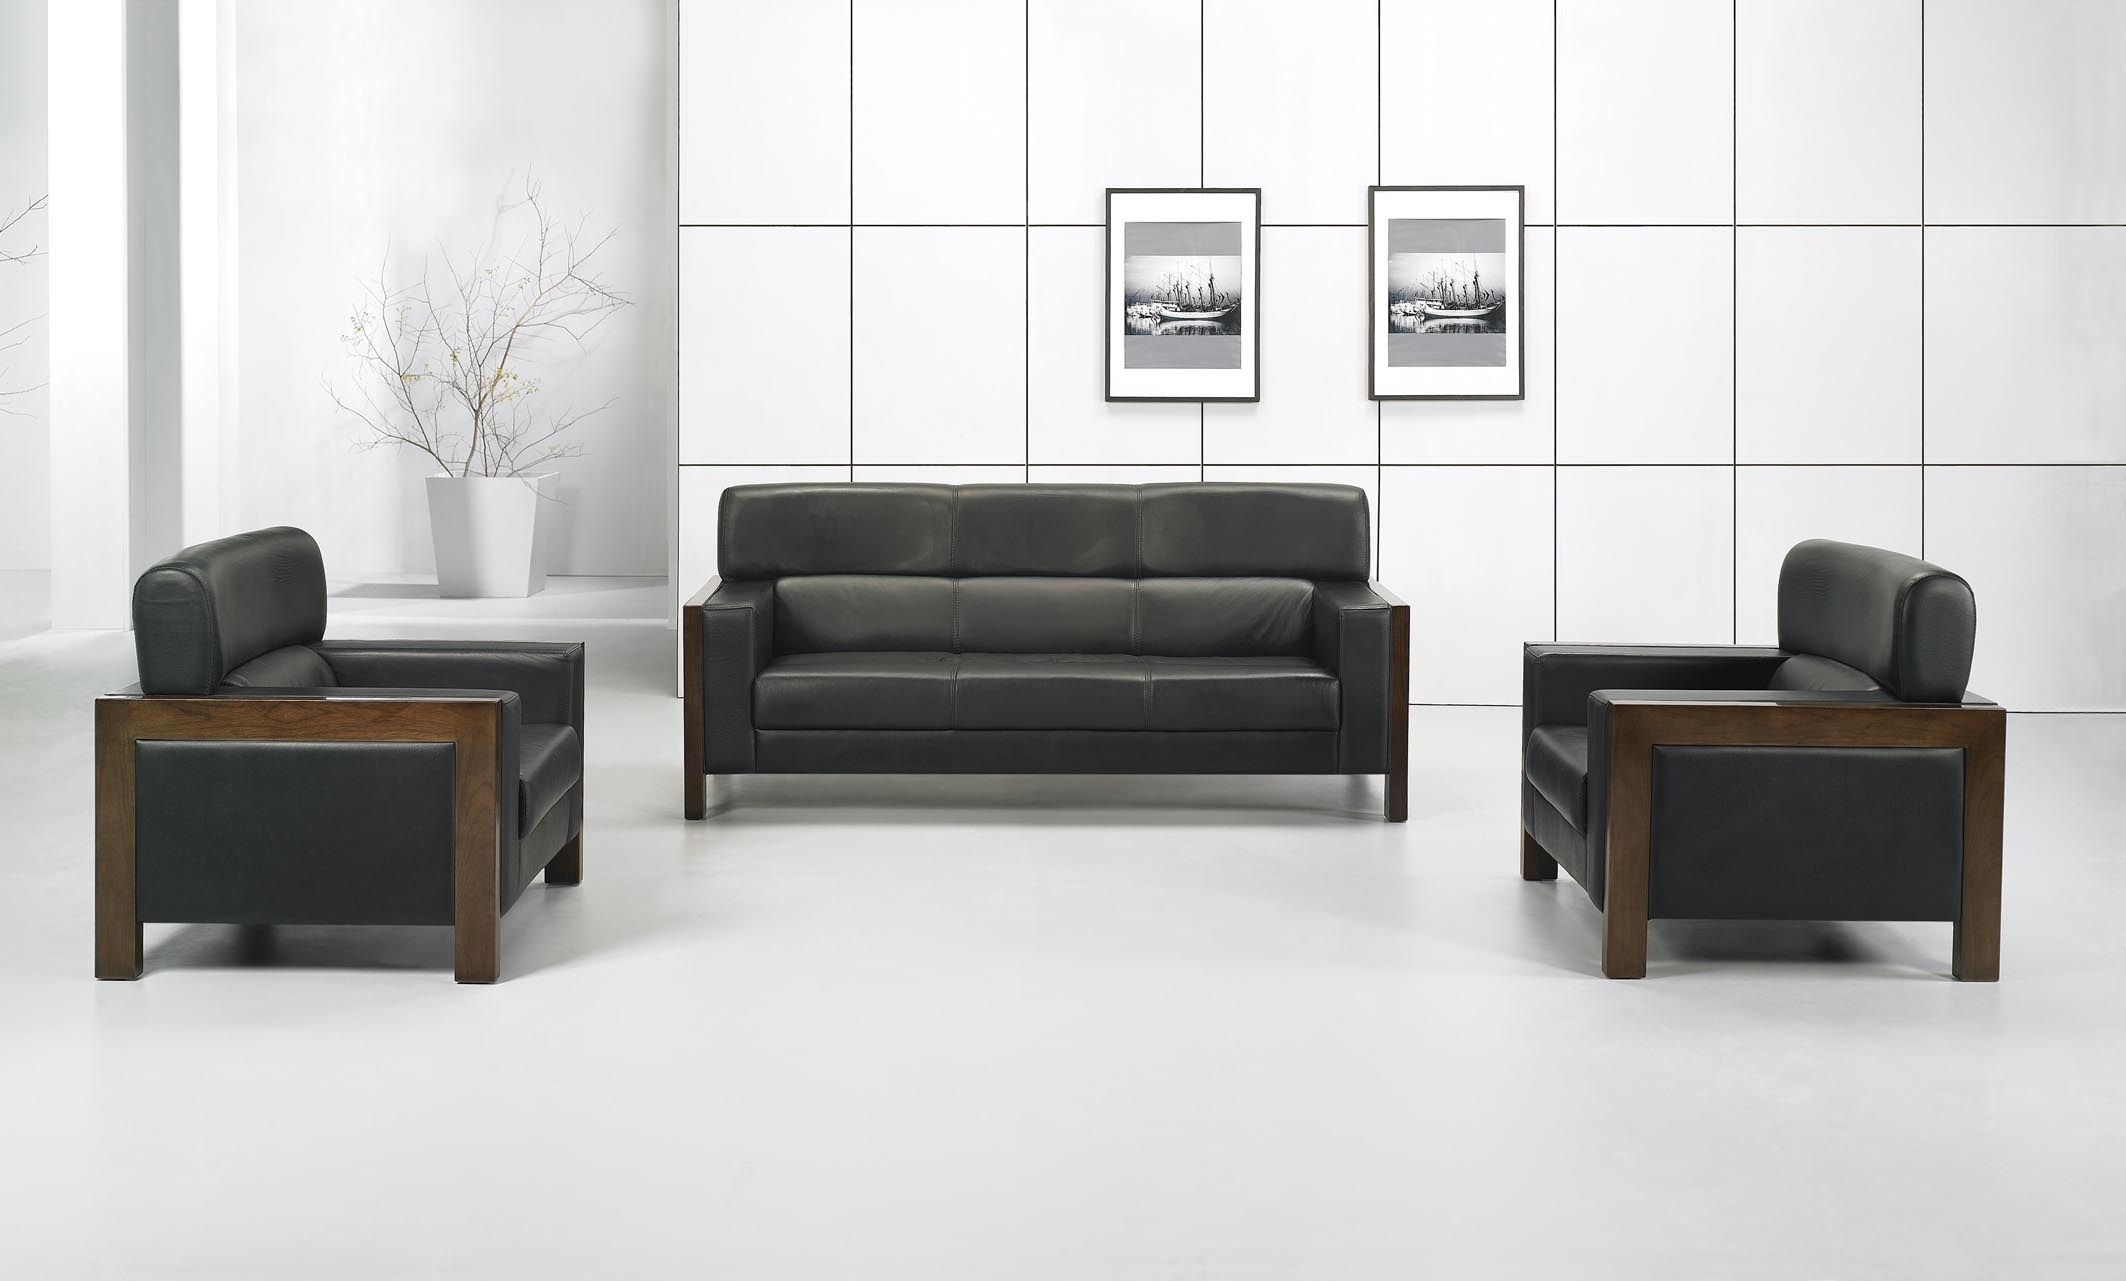 2 Sofa For Office | Carehouse With Regard To Office Sofas (Image 1 of 10)